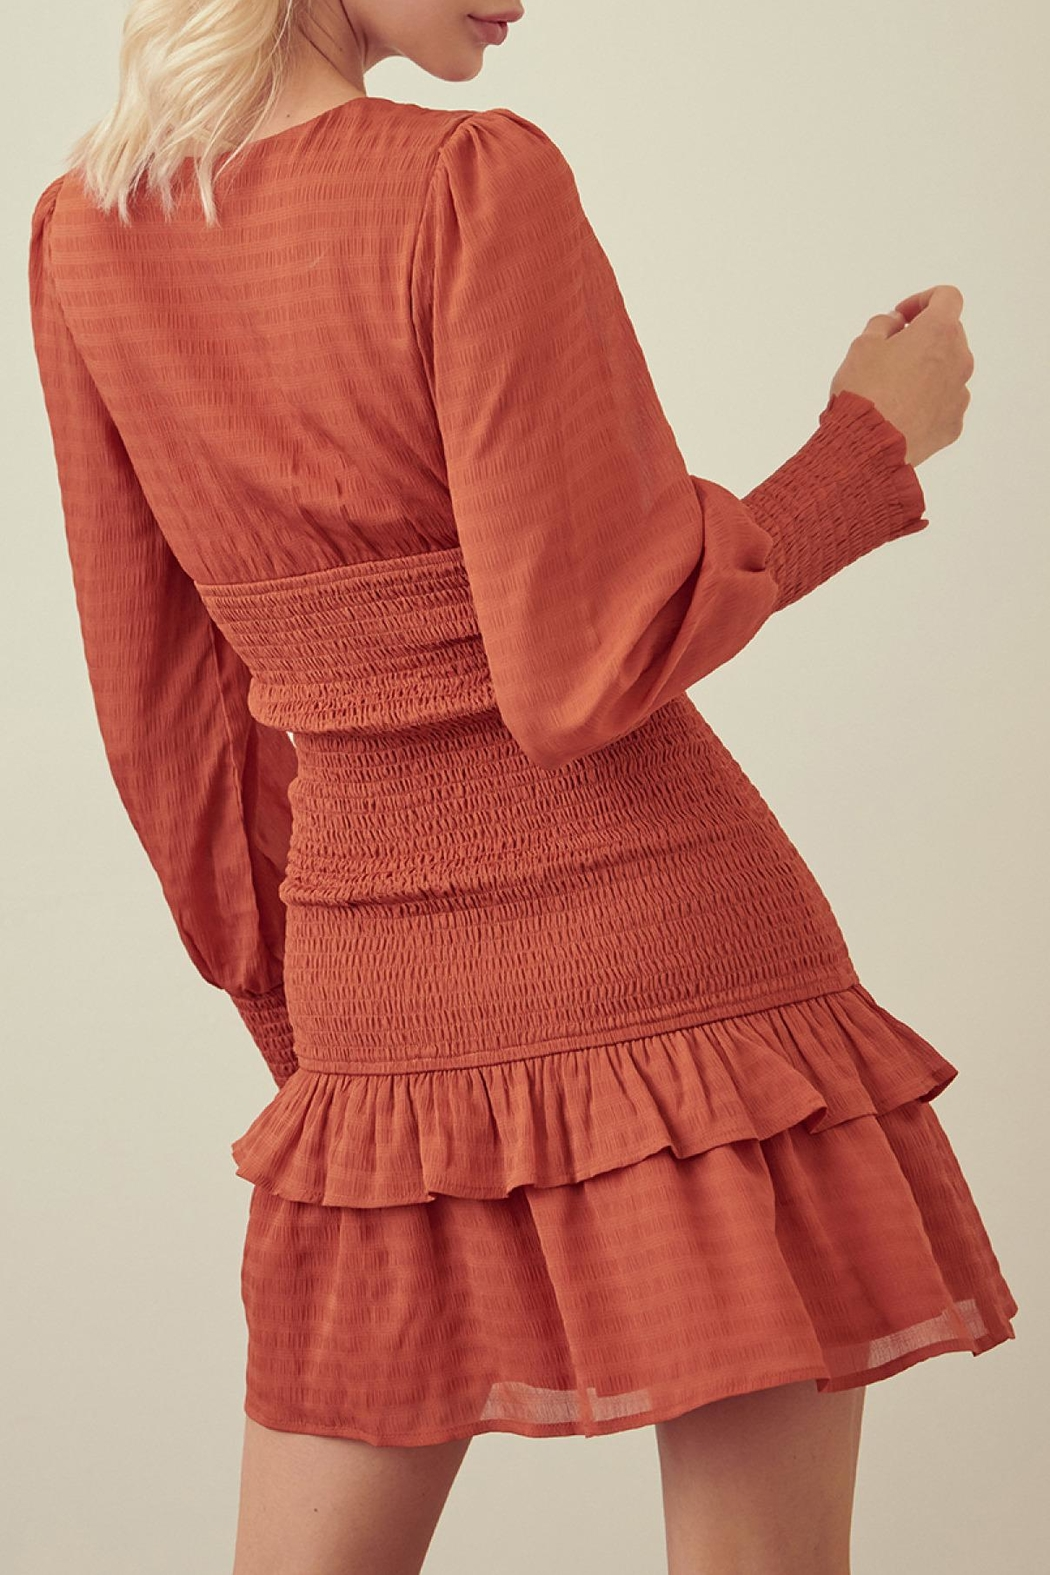 storia Rust Smocked Dress - Front Full Image